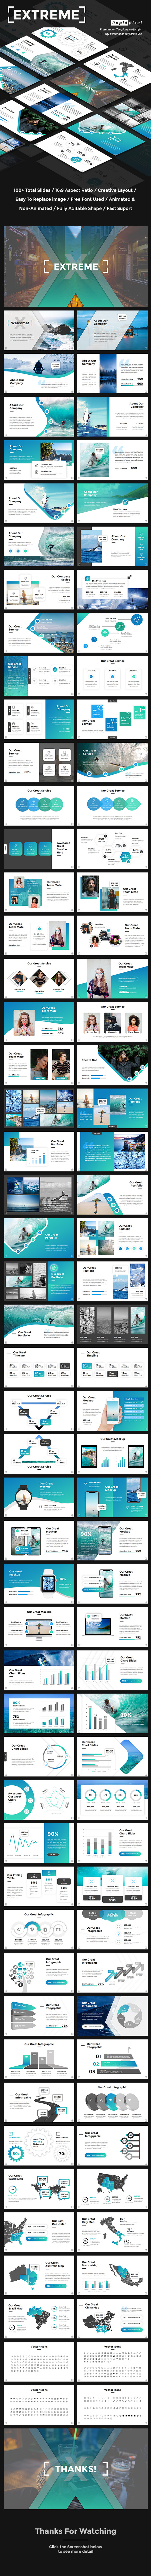 Extreme Business PowerPoint - Business PowerPoint Templates